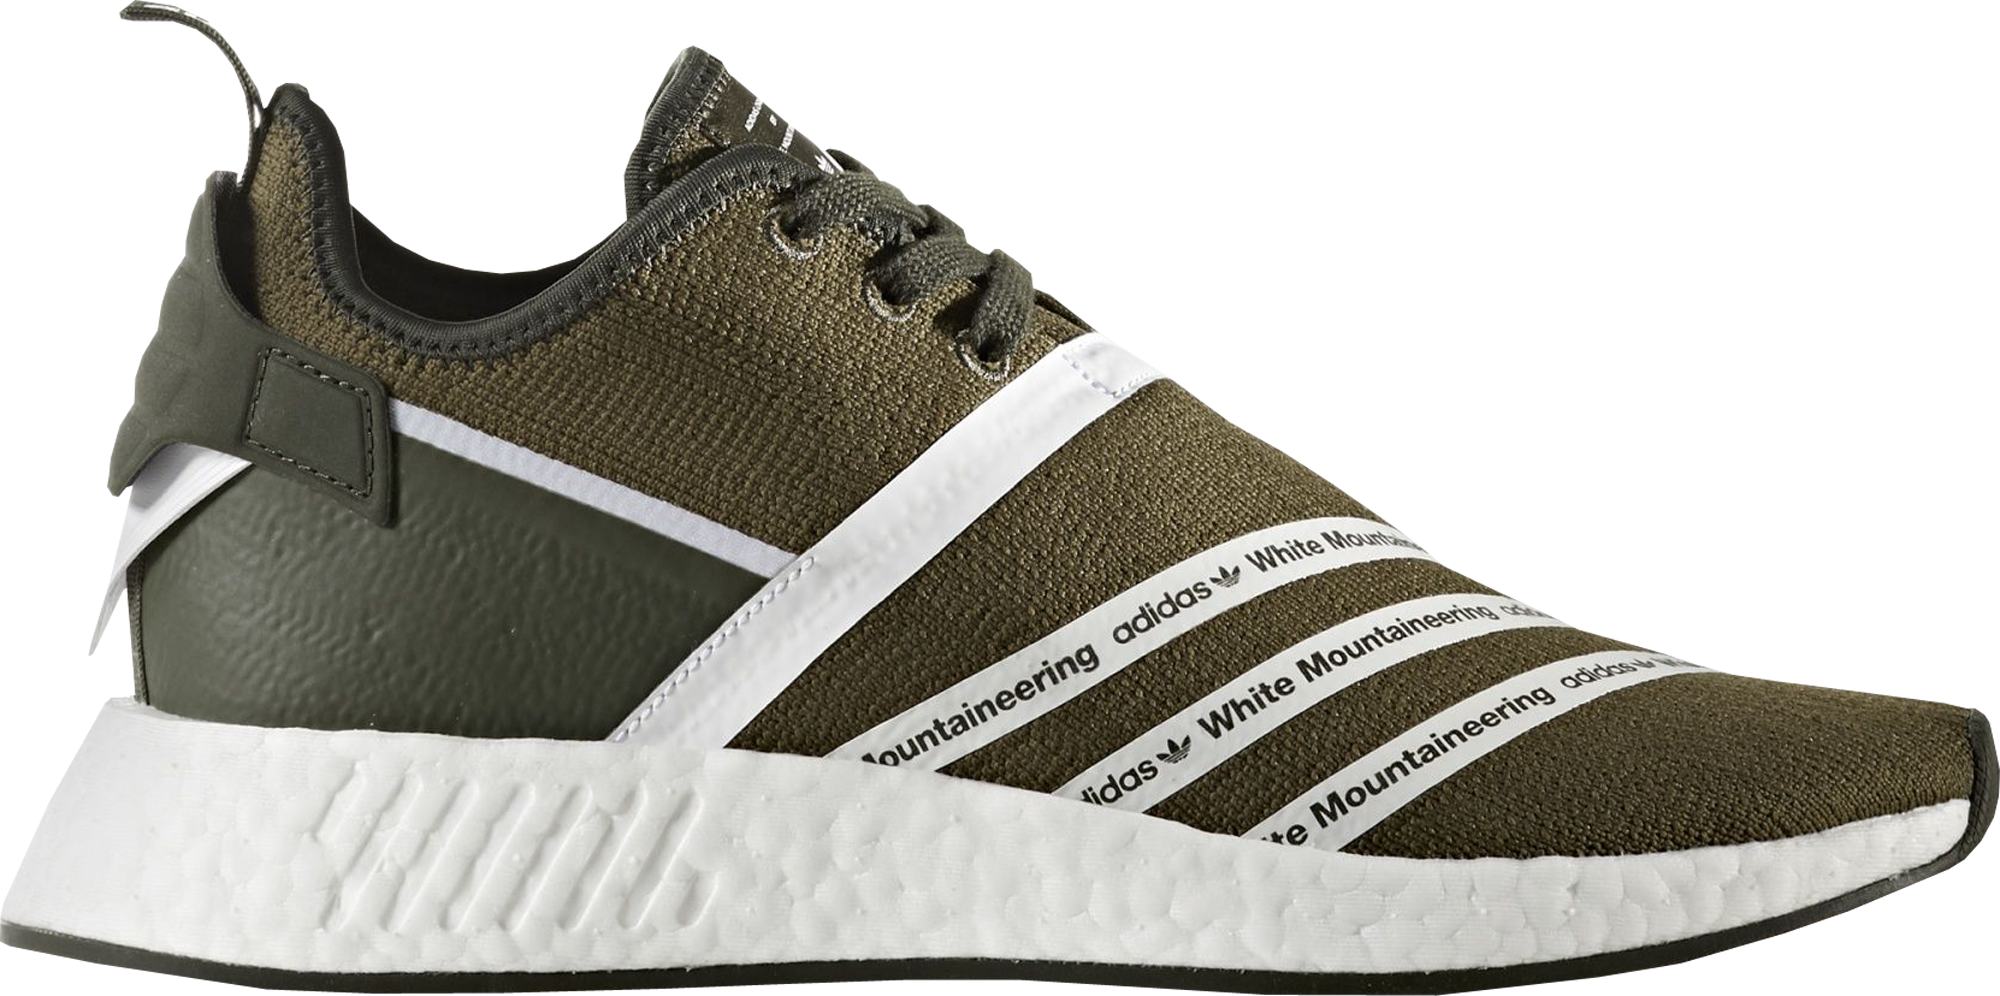 adidas NMD R2 White Mountaineering Trace Olive